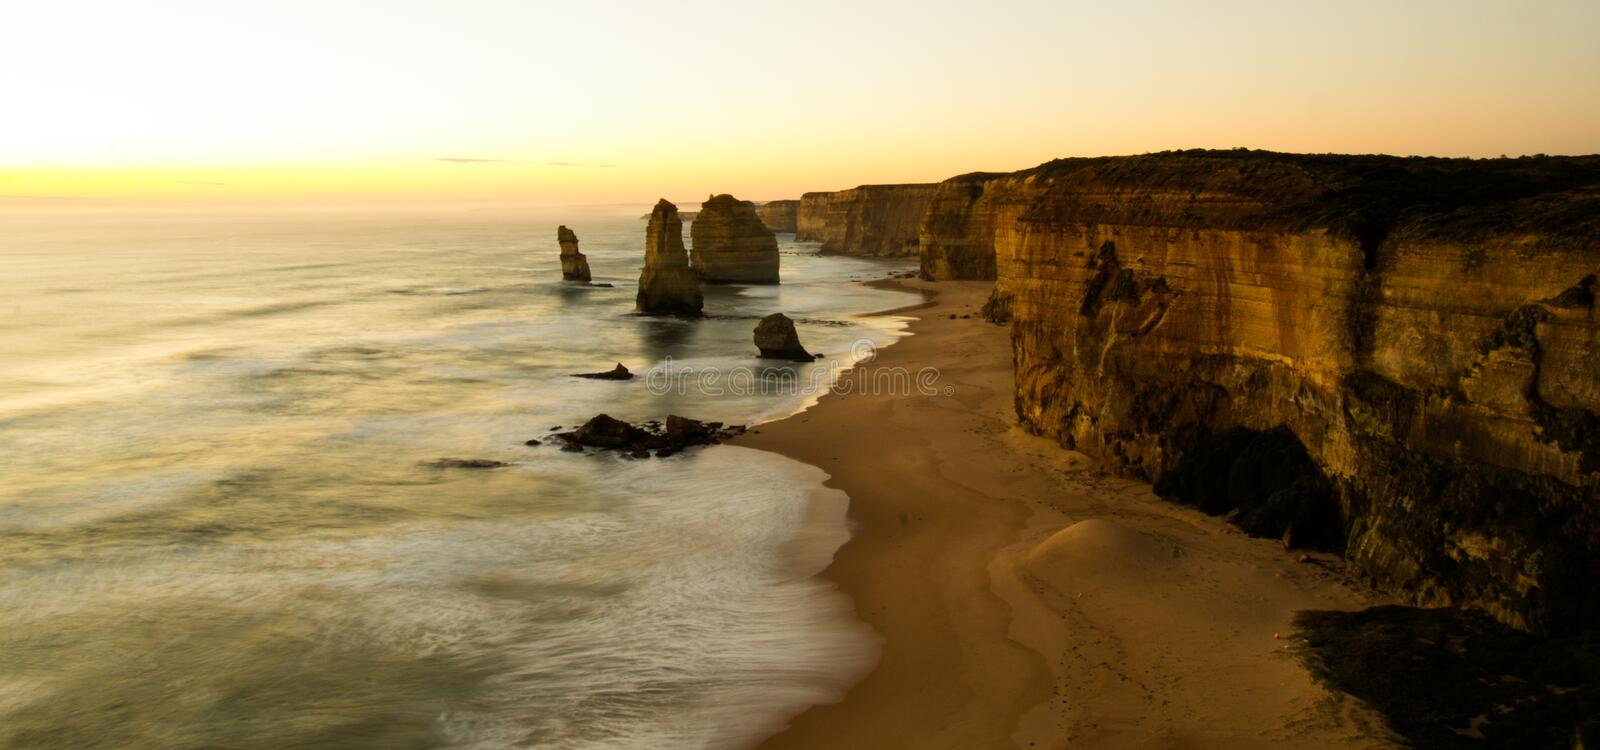 The Twelve Apostles. Great Ocean Road in Victoria, Australia, taken at sunset on a long exposure stock photo